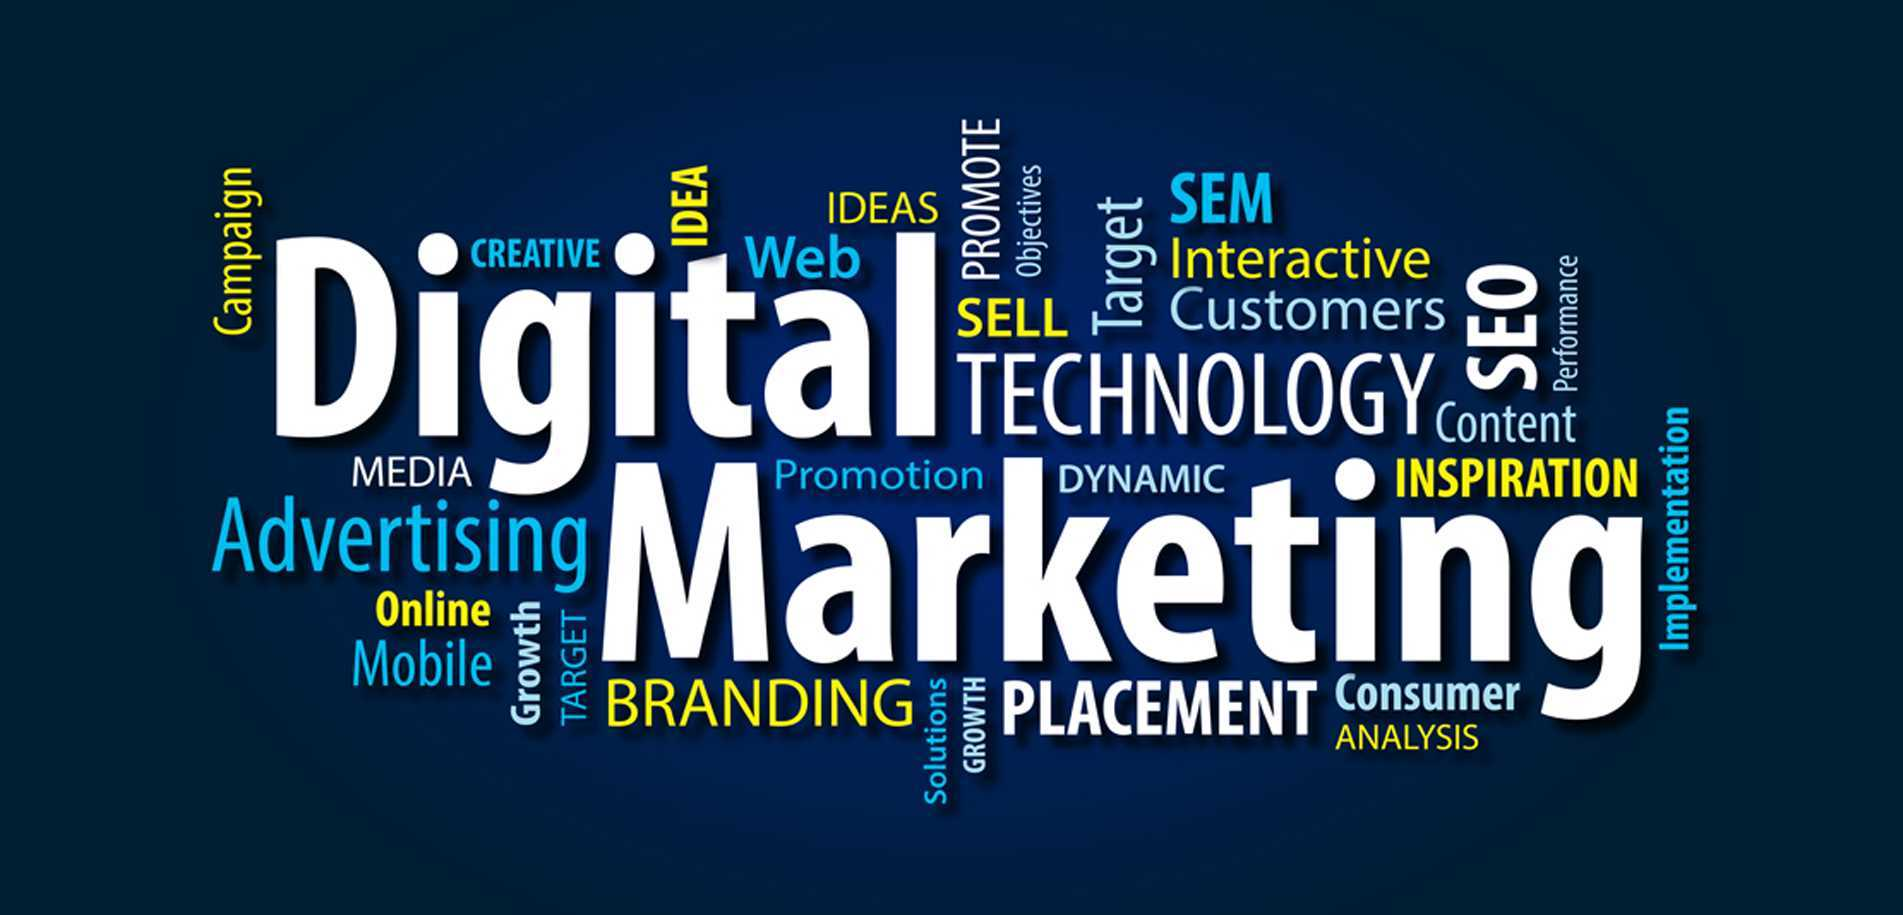 How do you do digital marketing?